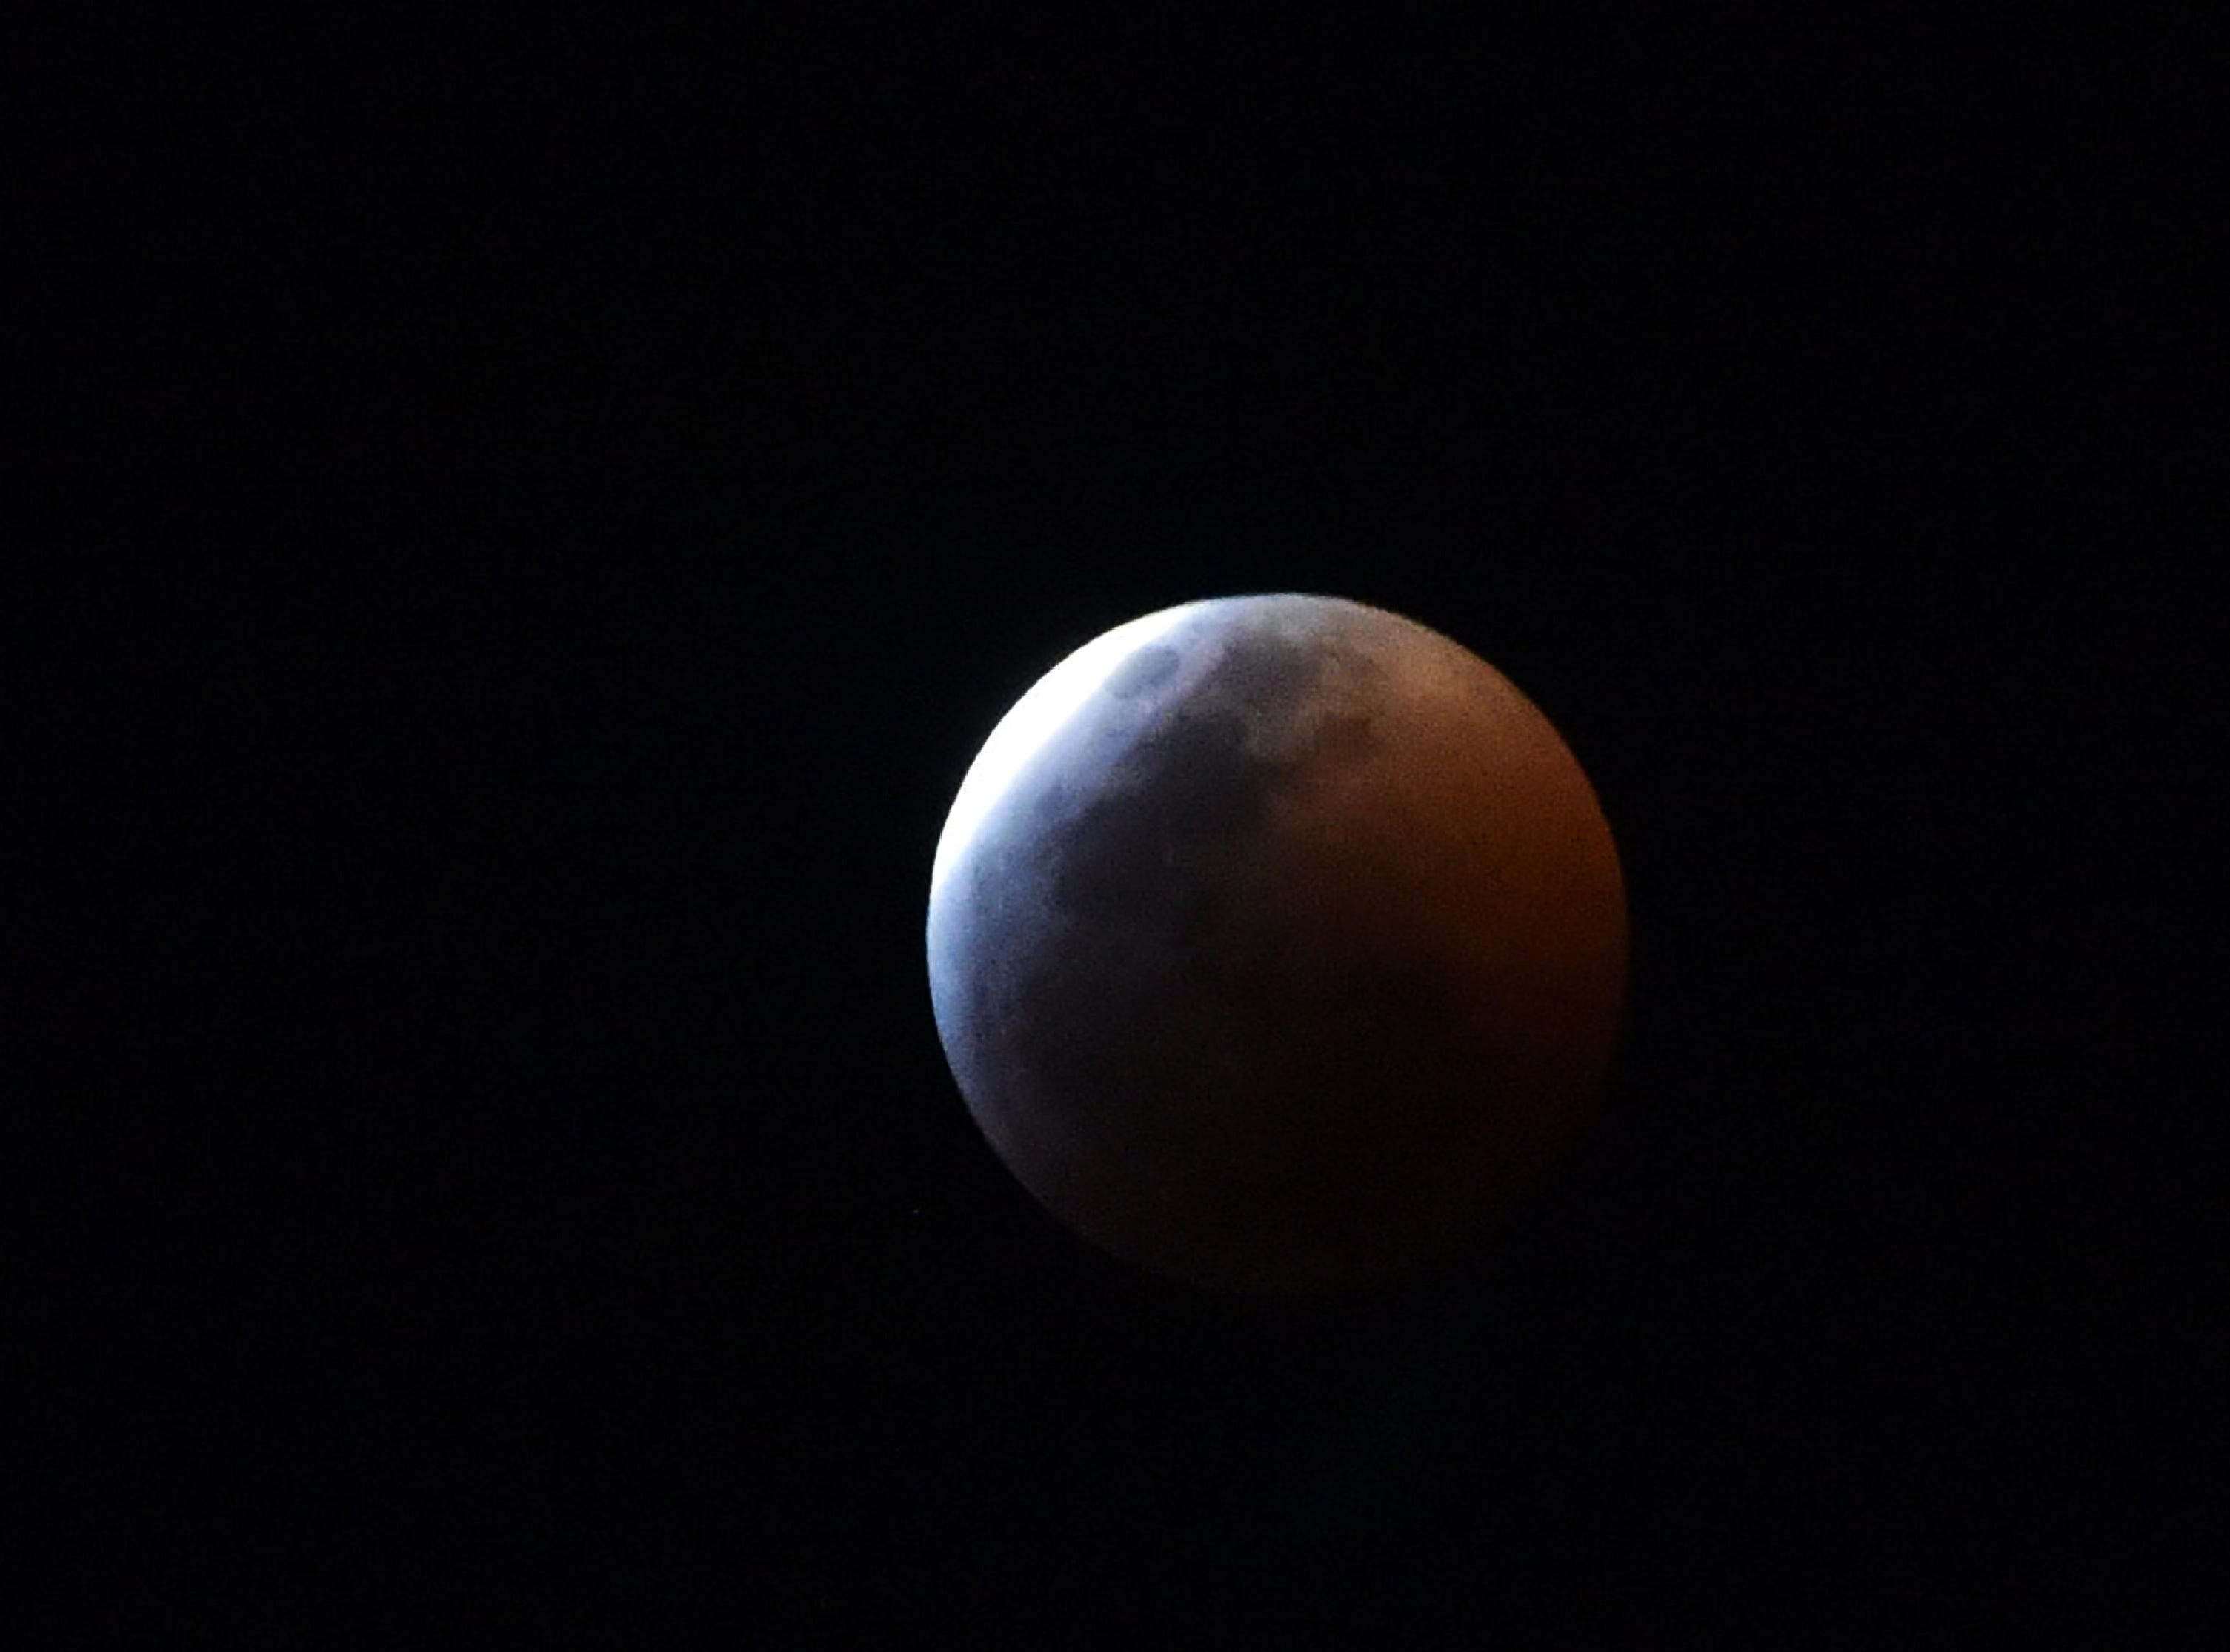 The so-called Super Blood Wolf Moon slips into Earth's dark umbral shadow during a total lunar eclipse over Mexico City on January 20, 2019. - An unusual set of celestial circumstances comes together Sunday for skywatchers in Europe, Africa and the Americas, where a total lunar eclipse may be glimpsed, offering a view of a large, red Moon. (Photo by RODRIGO ARANGUA / AFP)RODRIGO ARANGUA/AFP/Getty Images